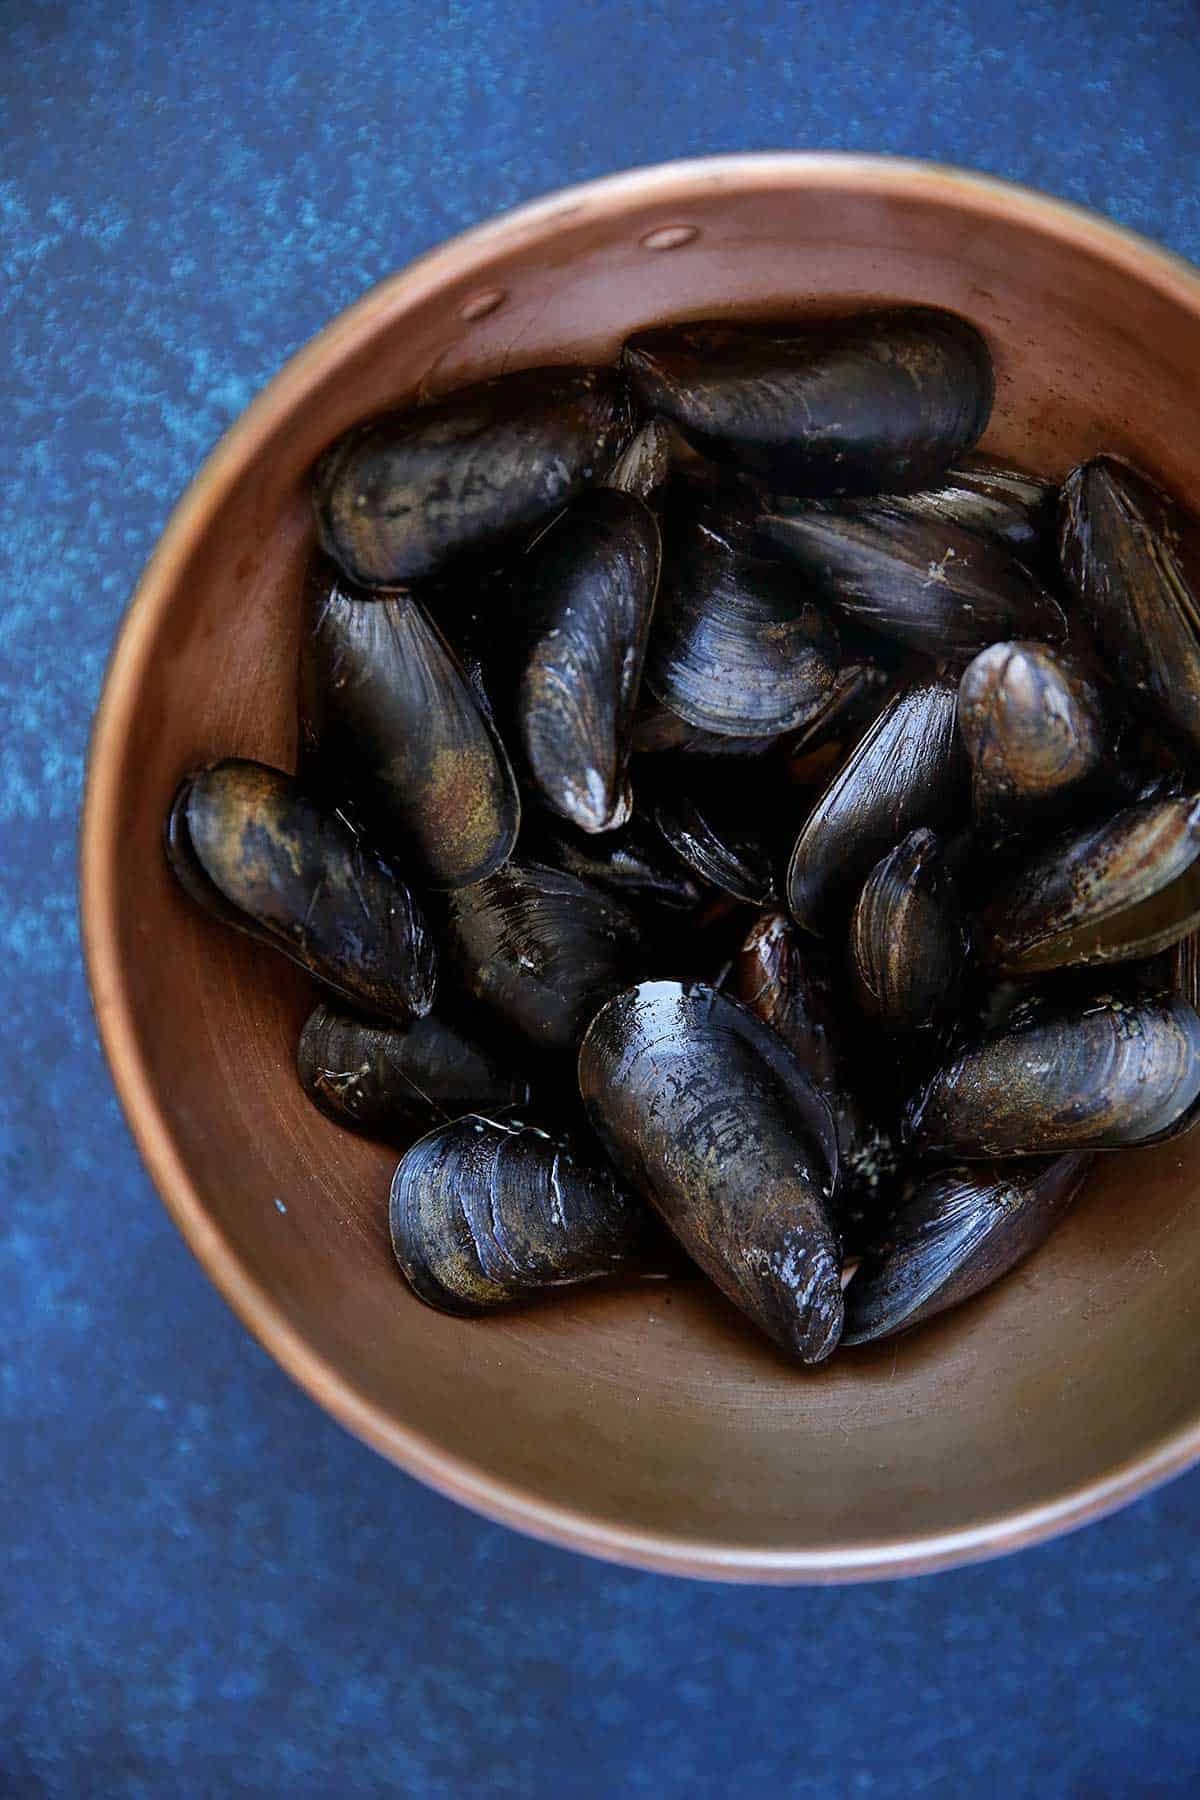 Mussels with Creamy Dijon Sauce